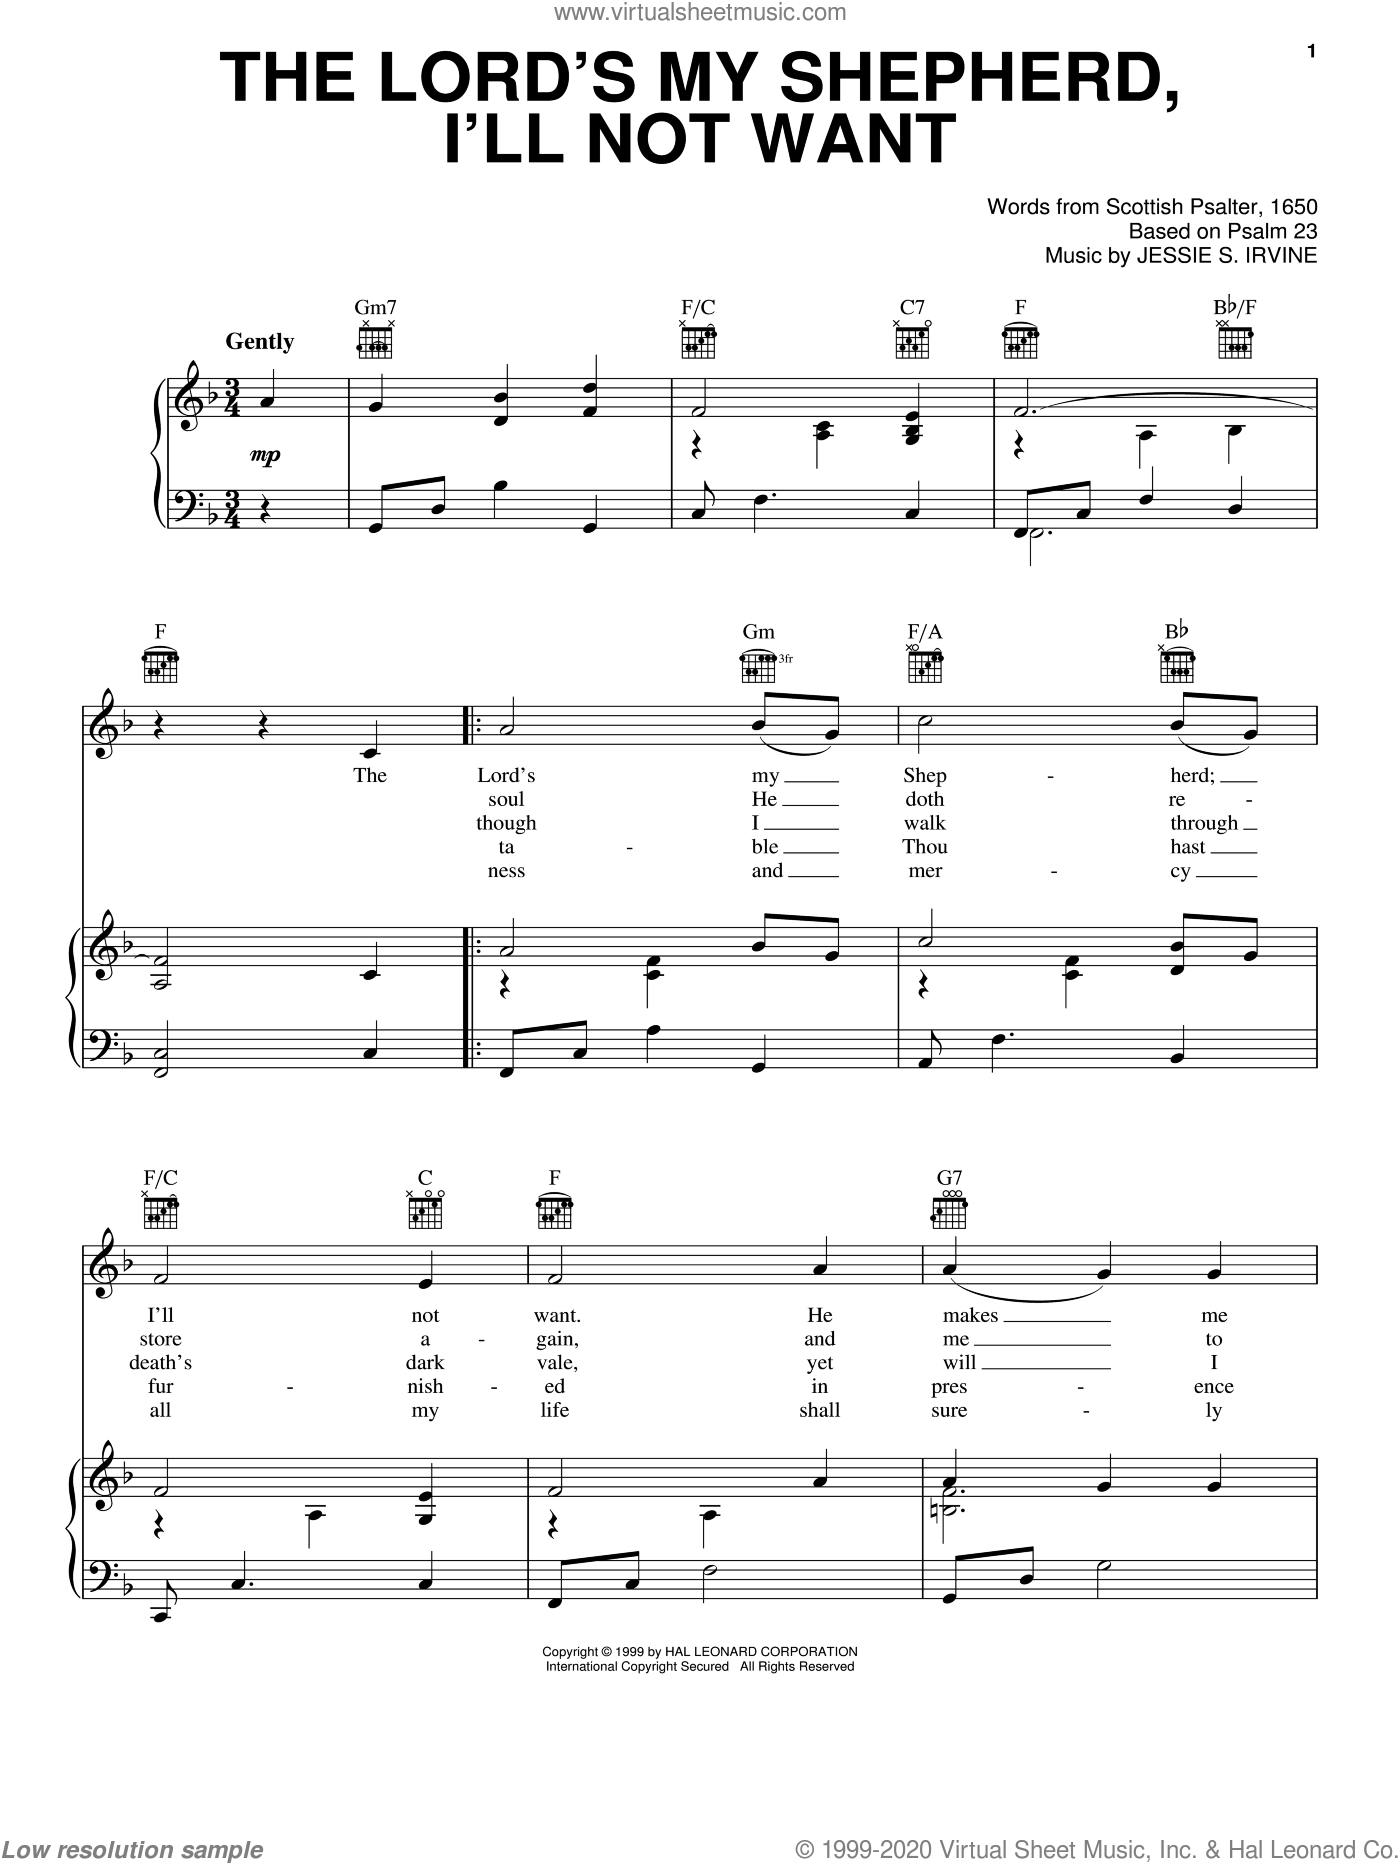 The Lord's My Shepherd, I'll Not Want sheet music for voice, piano or guitar by Jessie S. Irvine, intermediate. Score Image Preview.